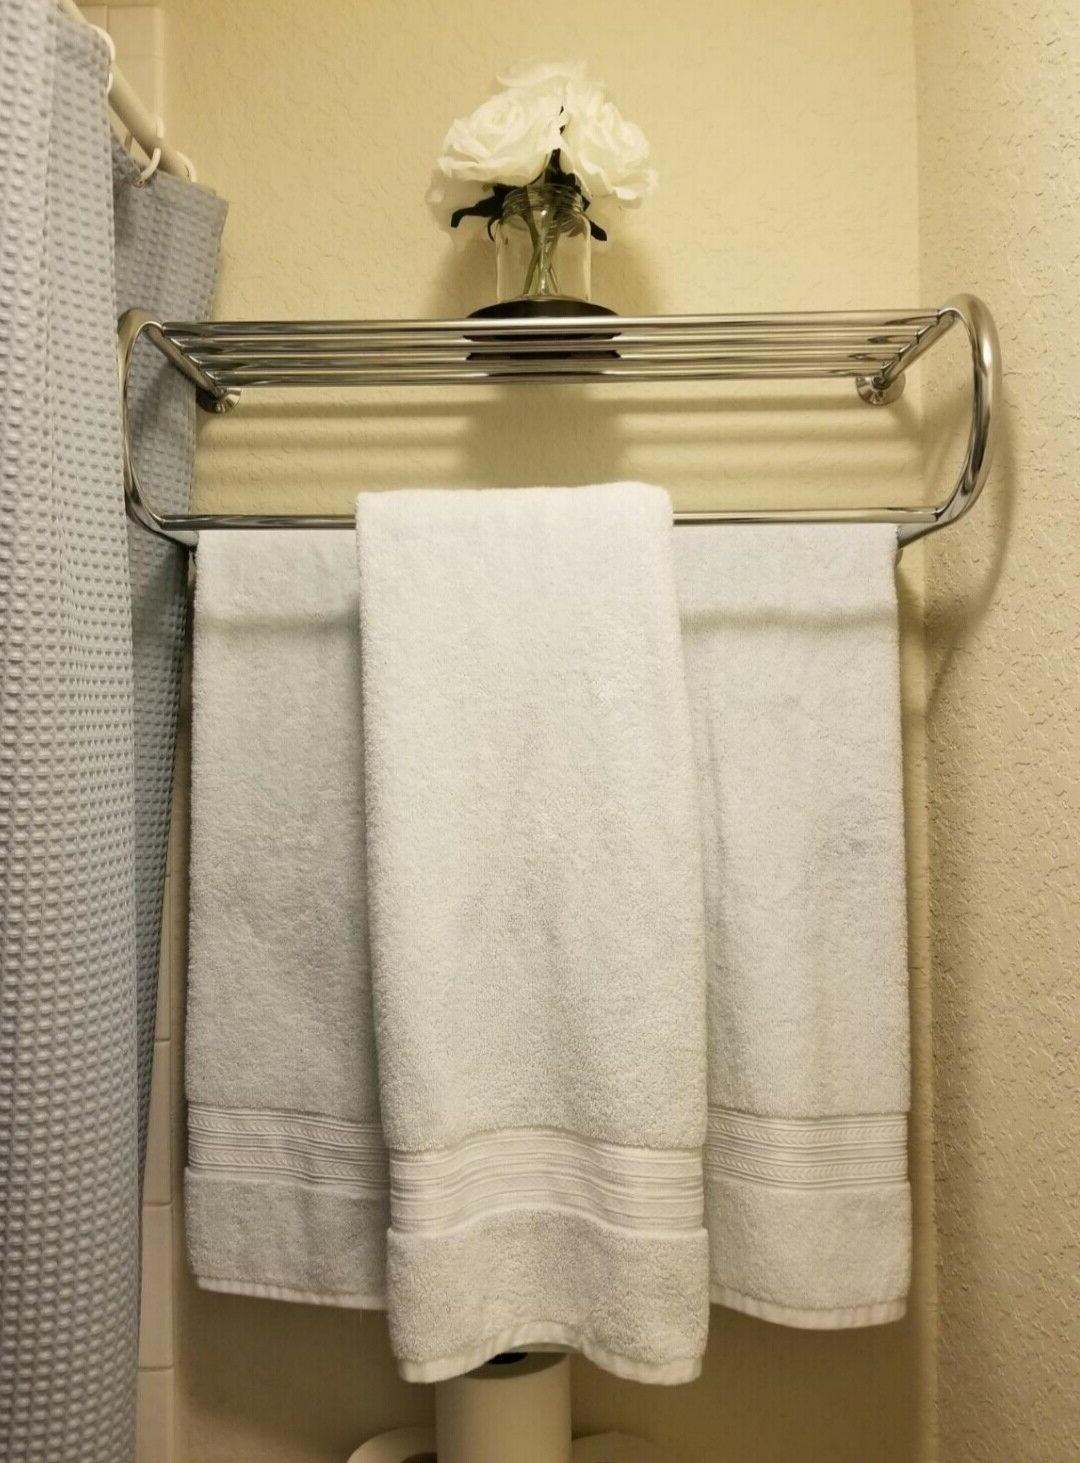 Bathroom Bath Rack with Wall Mount Shelf Finish